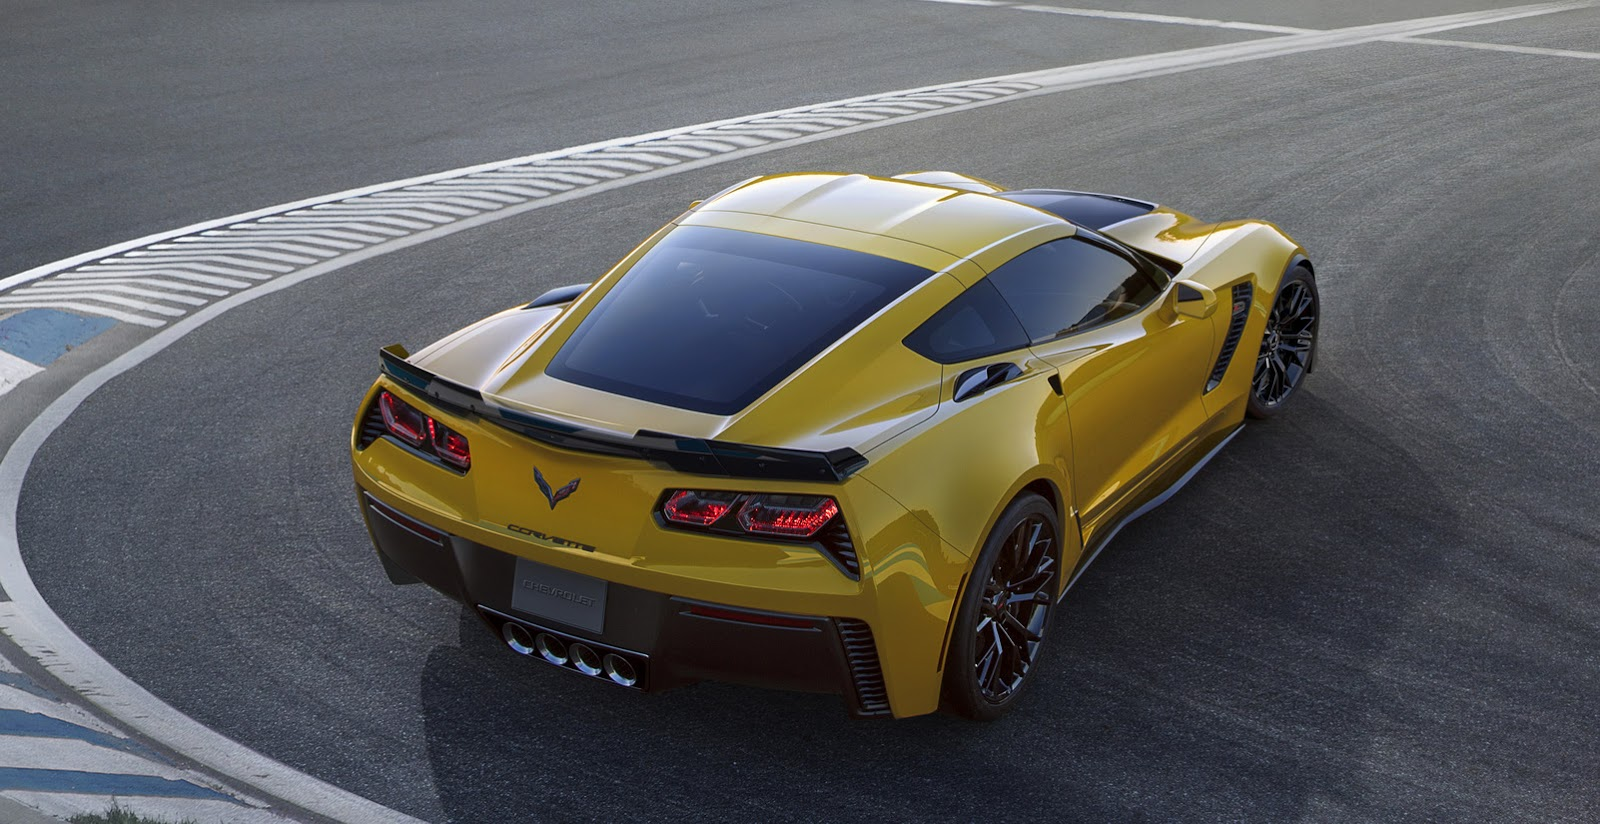 New 2015 Corvette Stingray Z06 is Bloody Fast Hits 60mph in 295